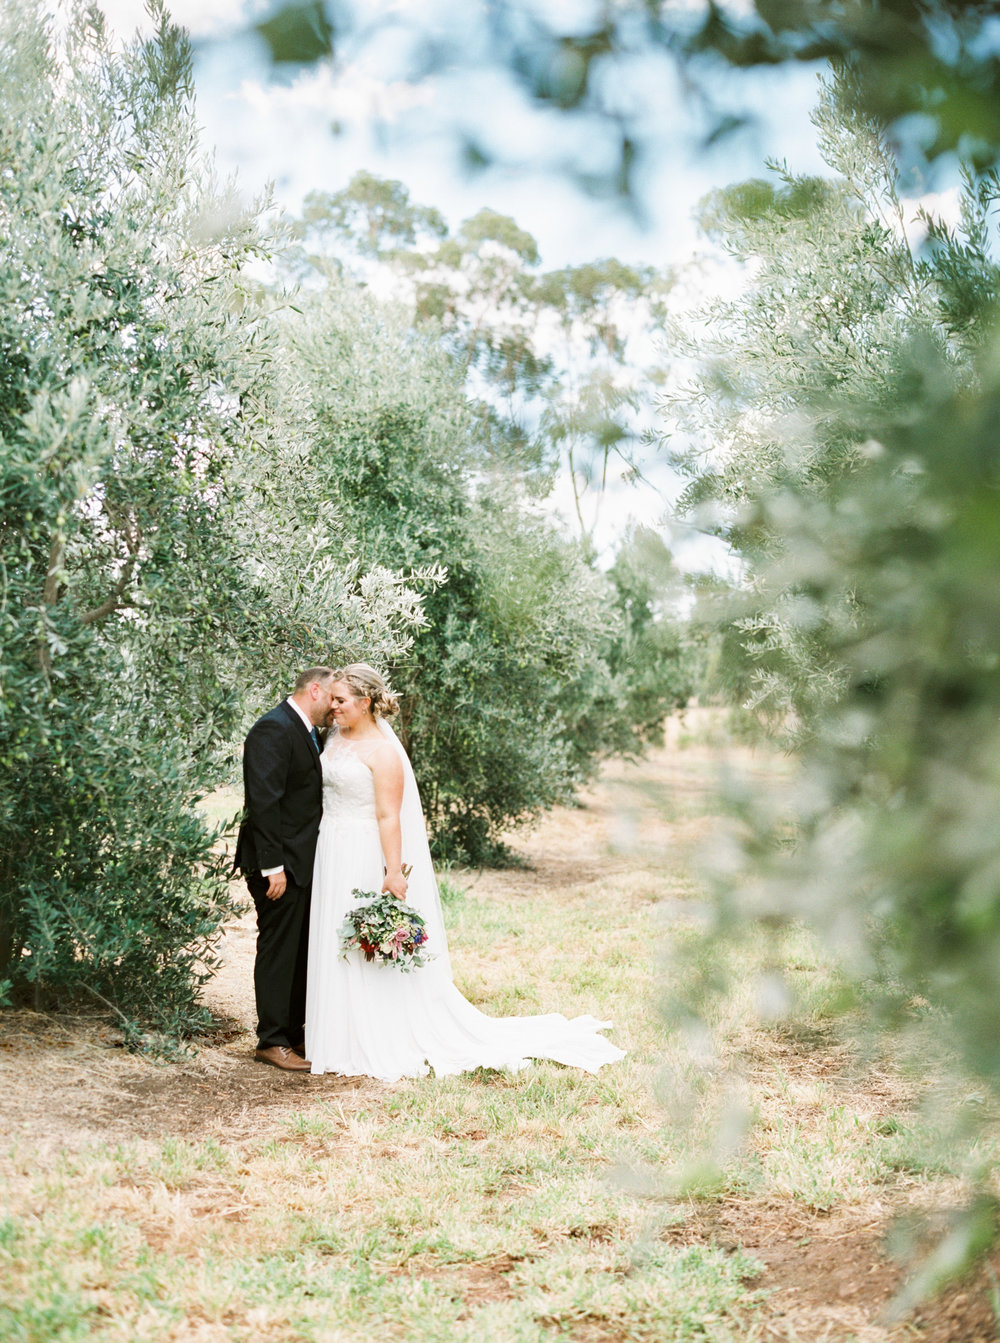 00032- Fine Art Film NSW Mudgee Wedding Photographer Sheri McMahon.jpg